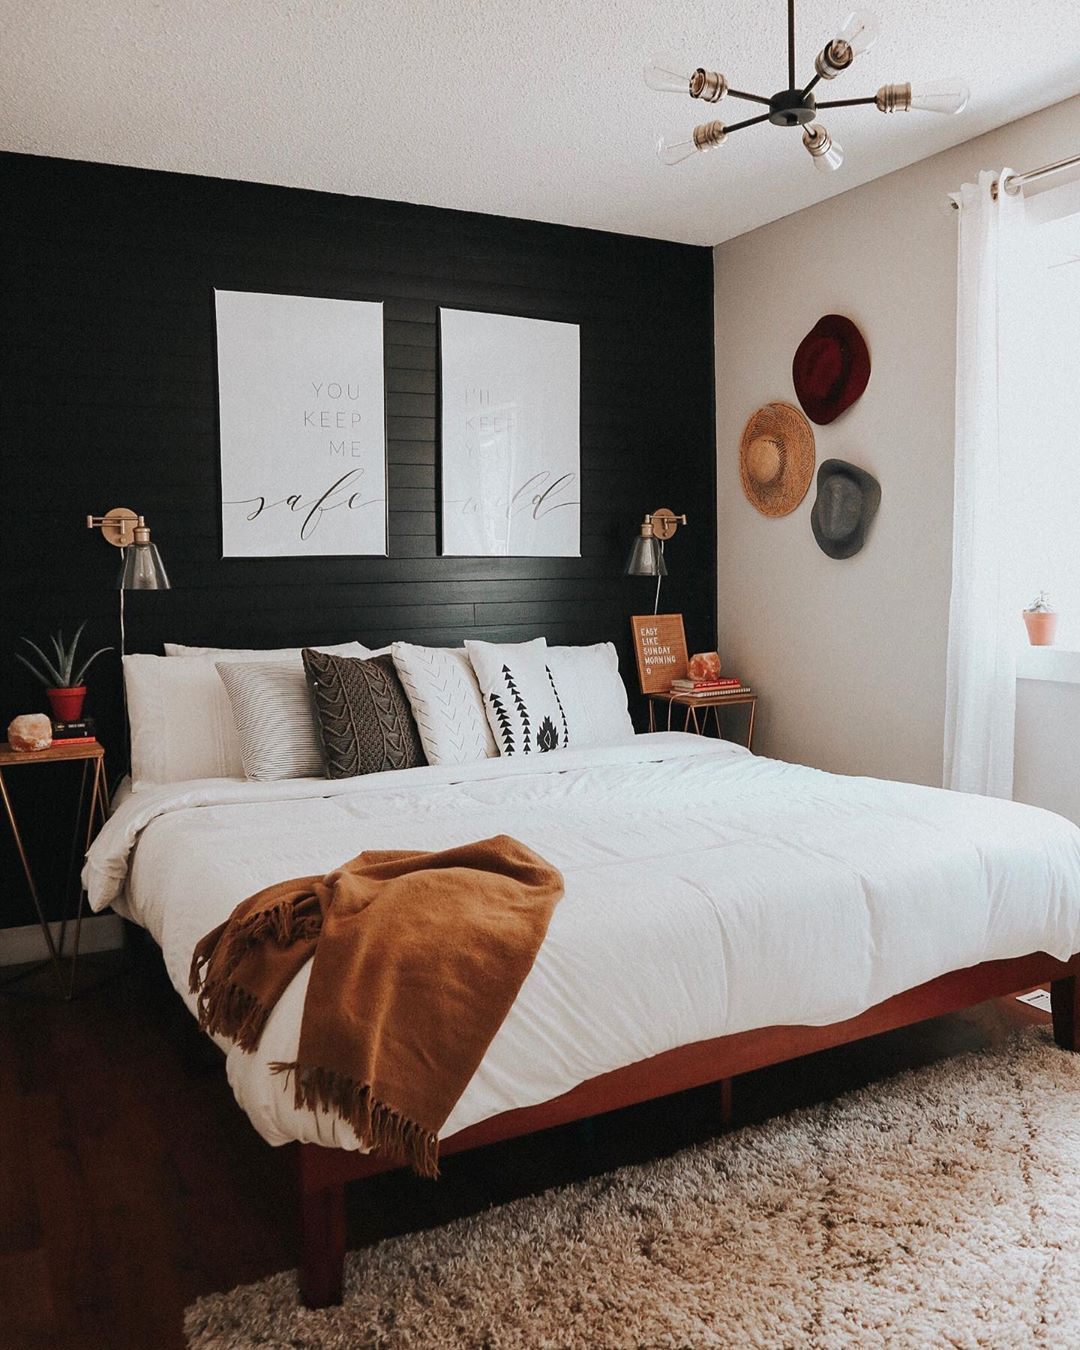 Best Revamped Bedroom • You Guys Black White And Wood Accents Are Giving Me Life Soon Enough 400 x 300